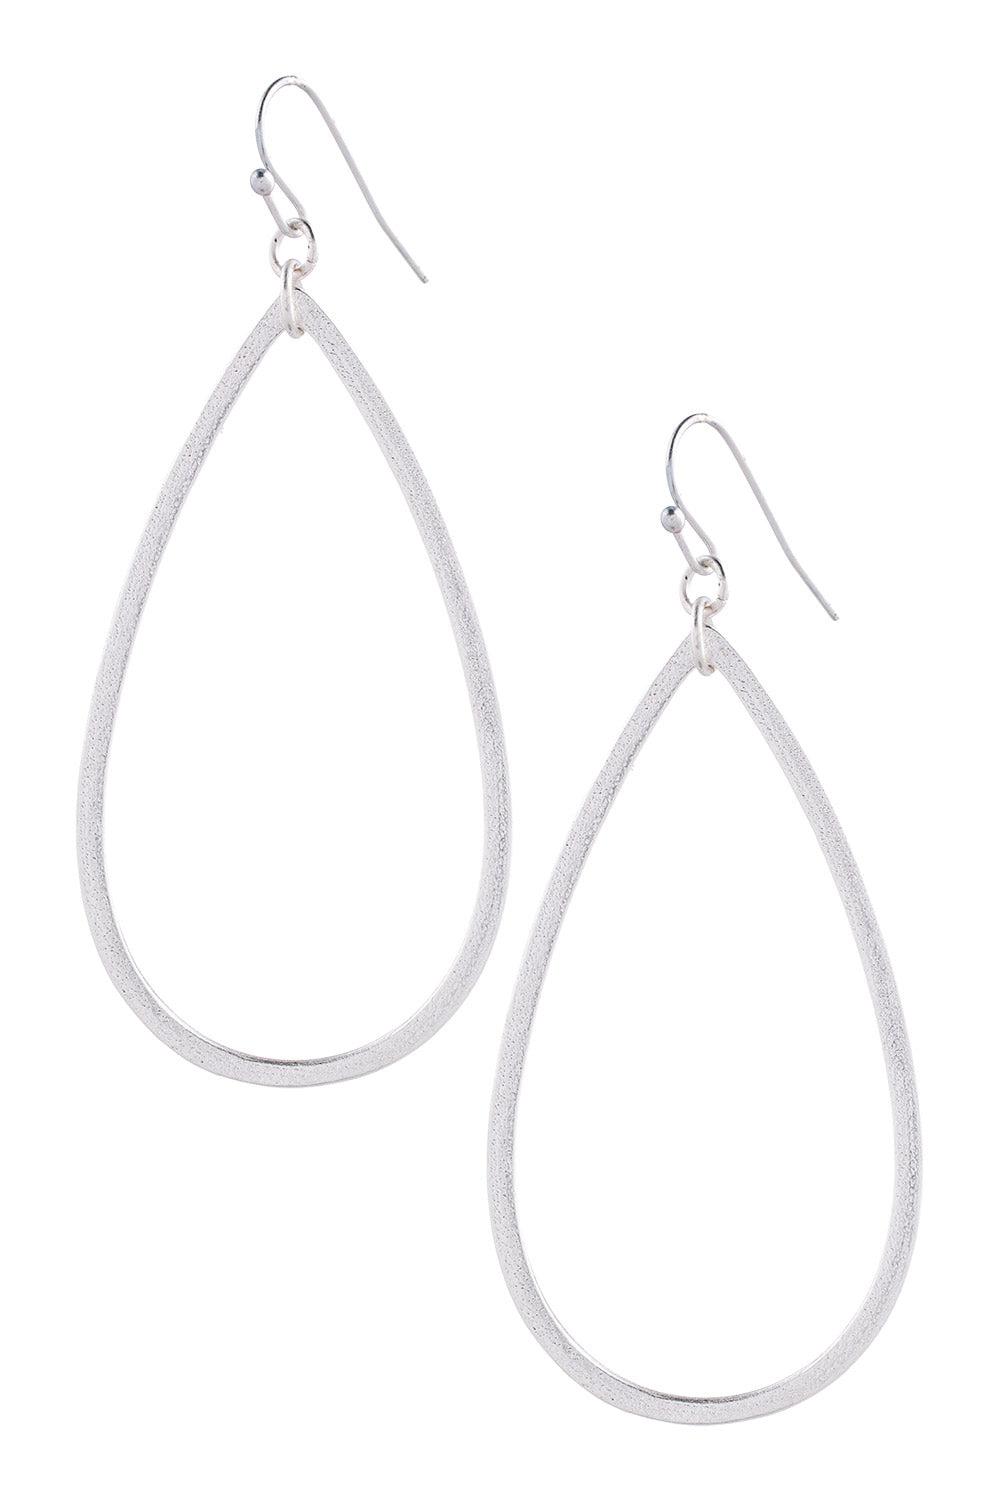 Type 2 Glistening Teardrops Earrings